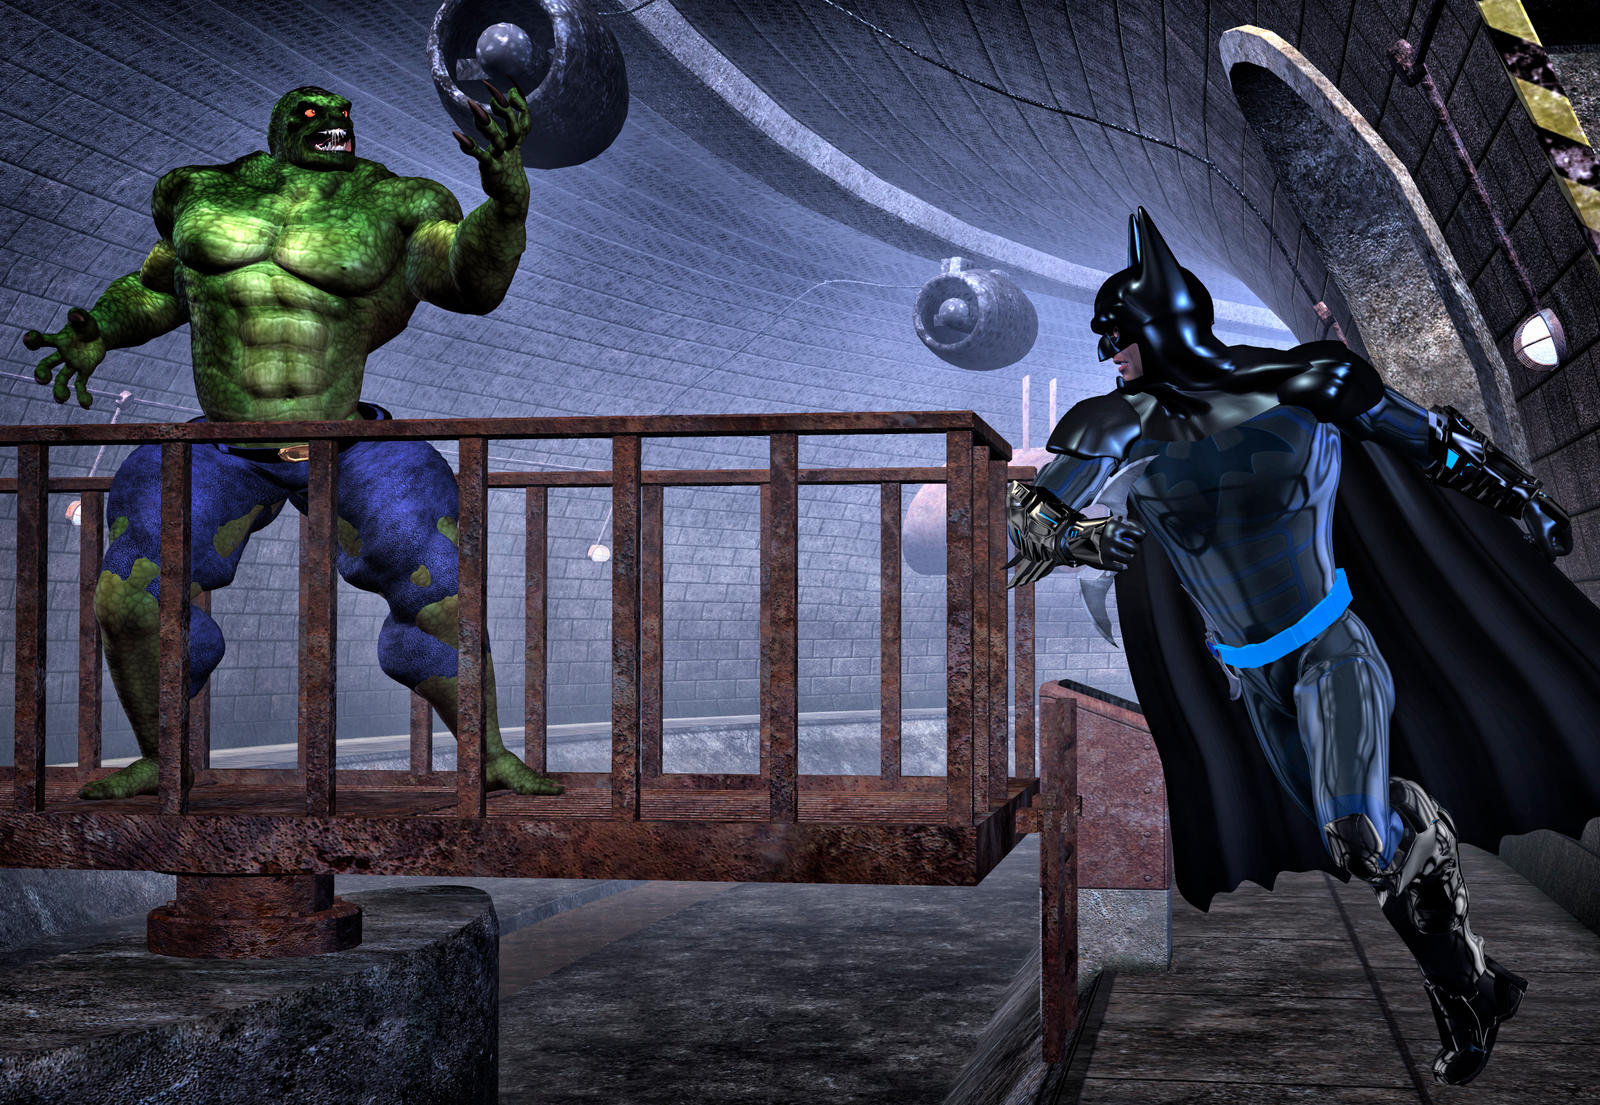 Batman vs KillerCrok by hiram67